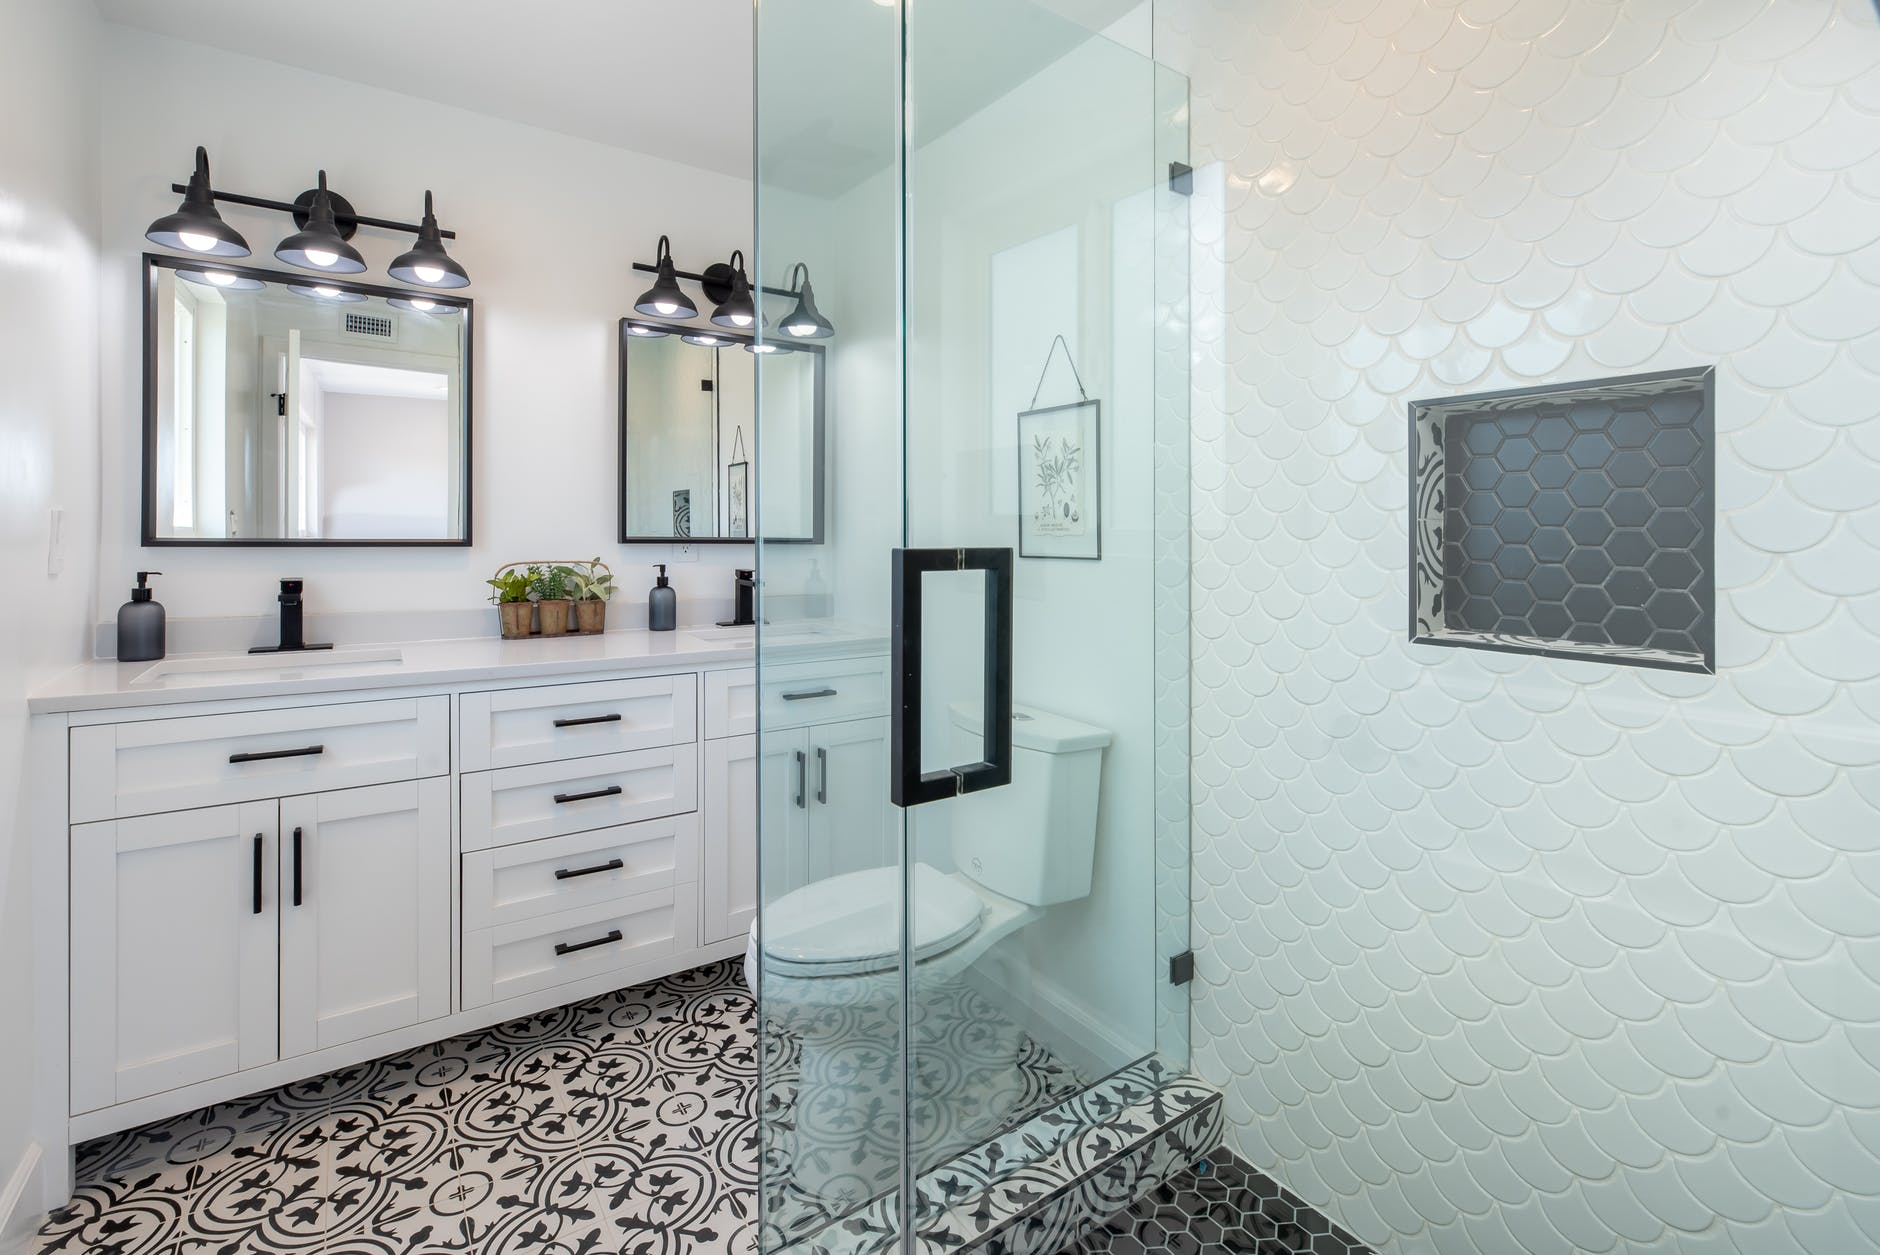 Best tips to create a functional bathing space – Bathroom Renovation Toronto